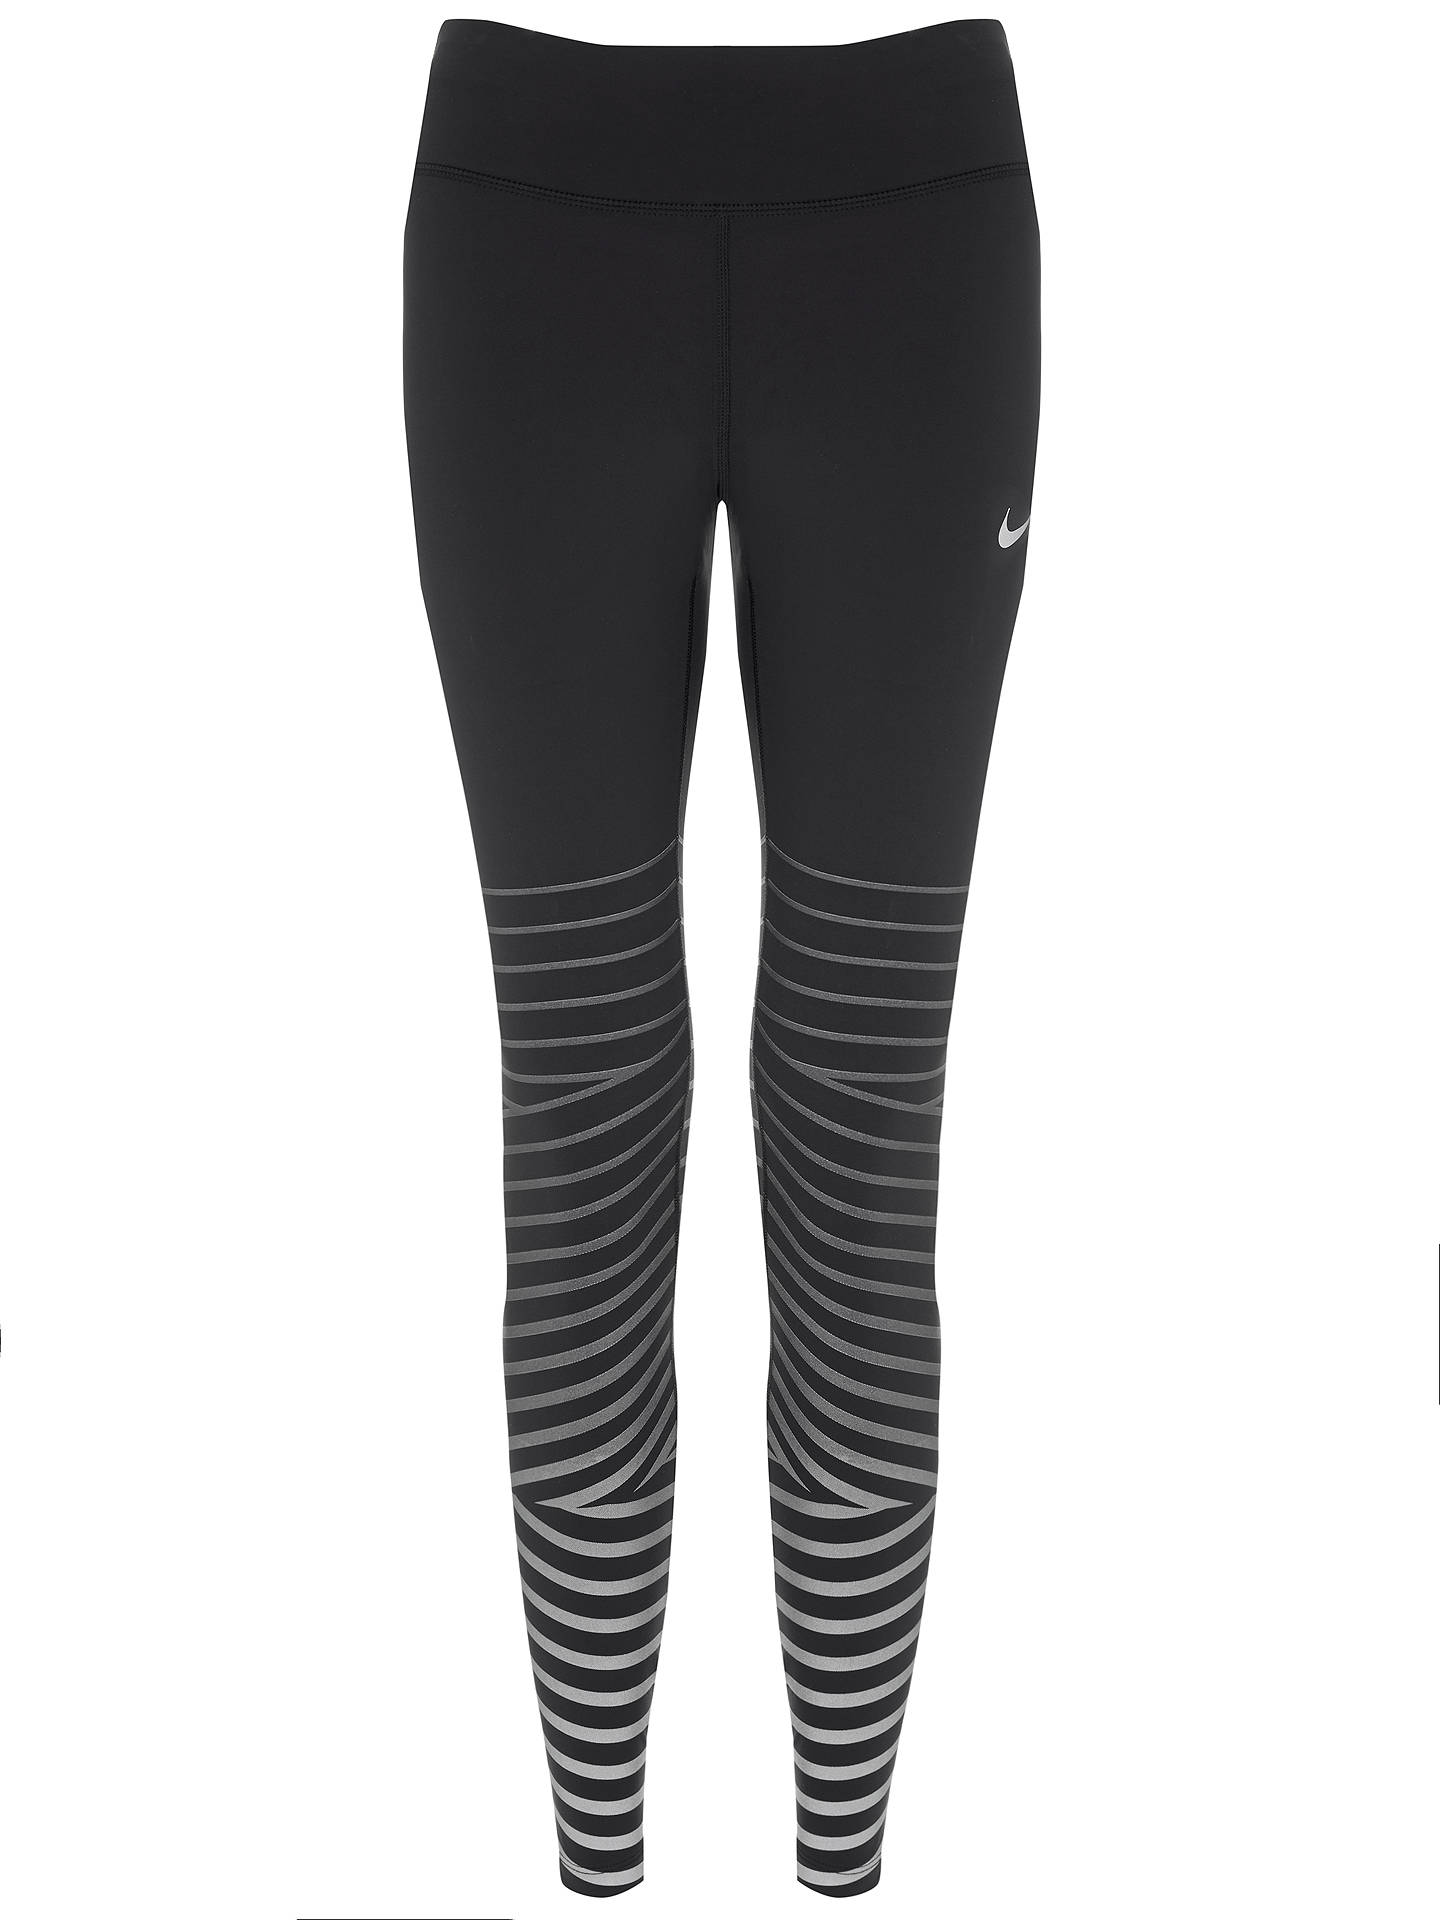 fd00d6345e ... Buy Nike Power Epic Lux Flash Running Tights, Black/Anthracite, XS  Online at ...